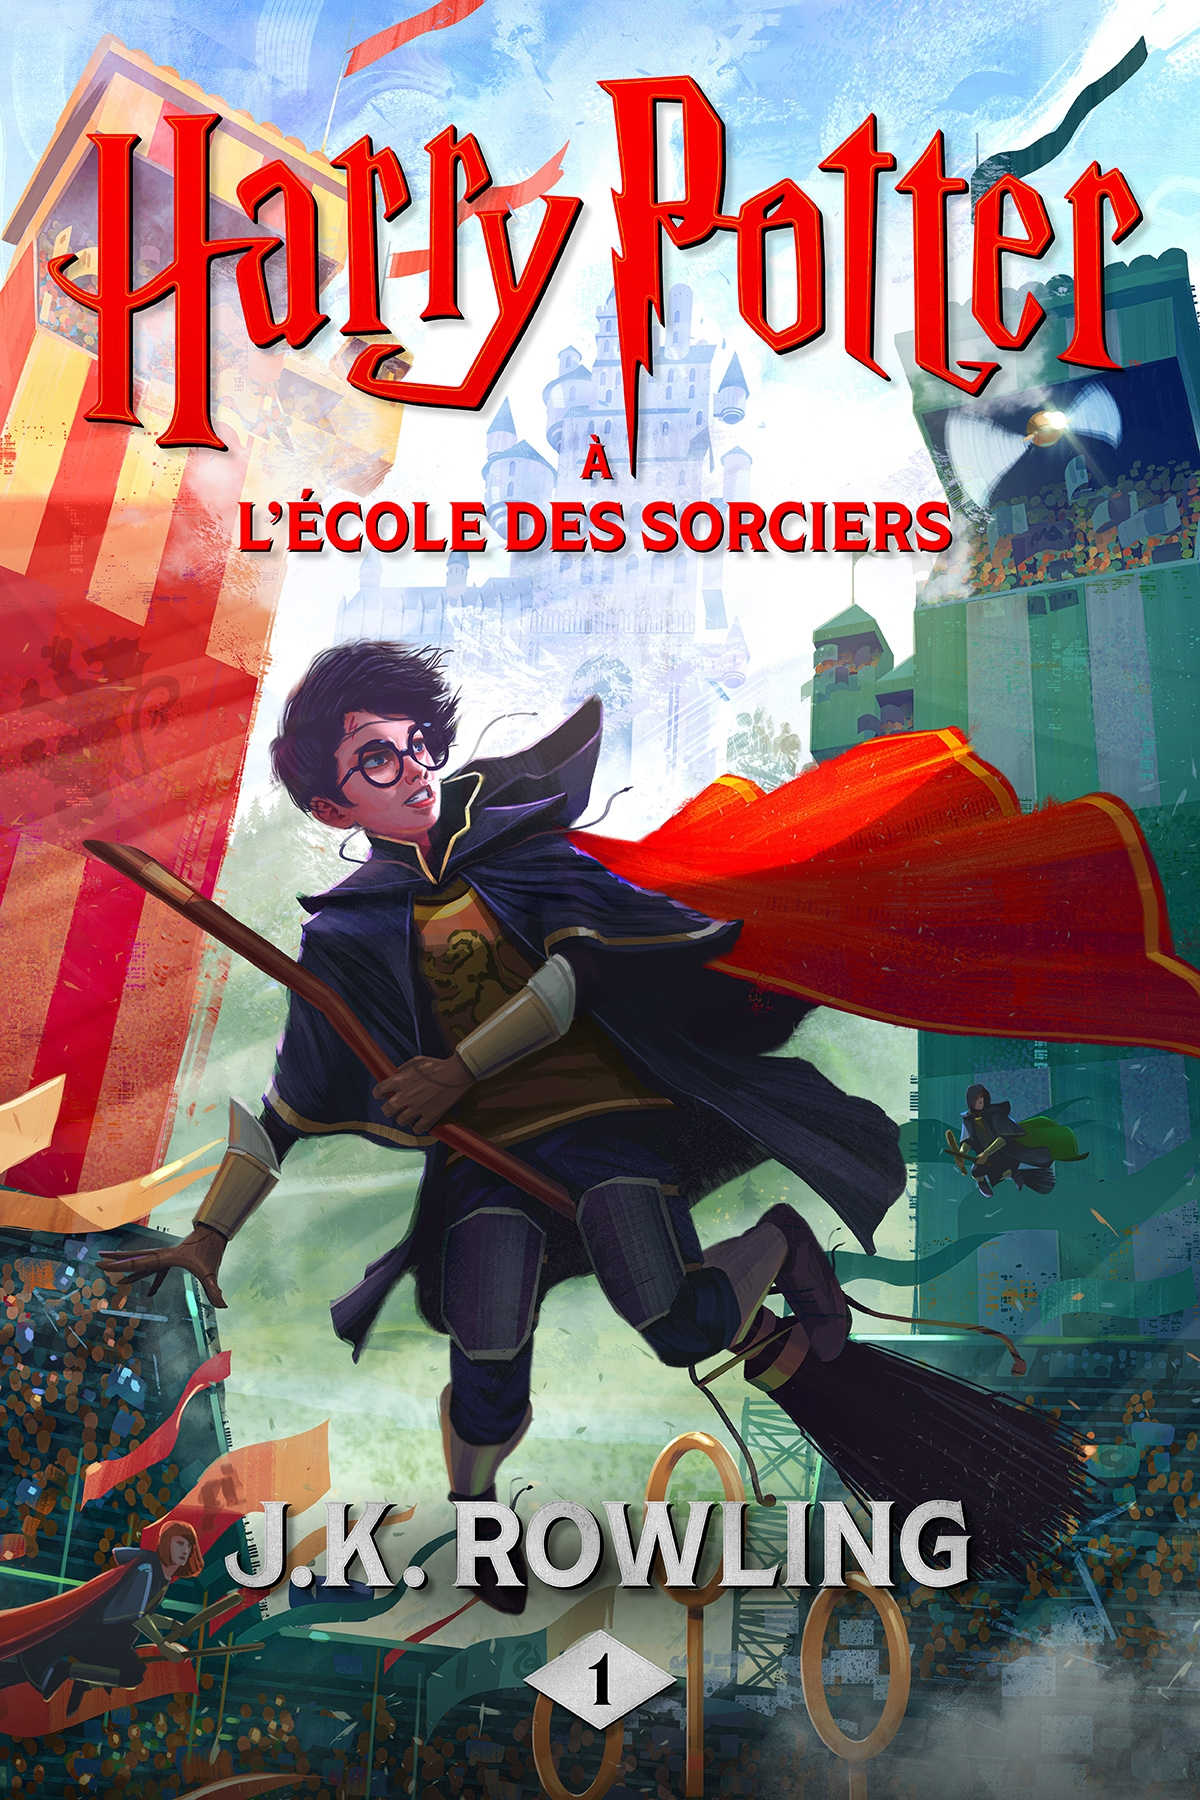 Couverture : Harry Potter T.1 : Harry Potter à l'École des sorciers J.k. Rowling